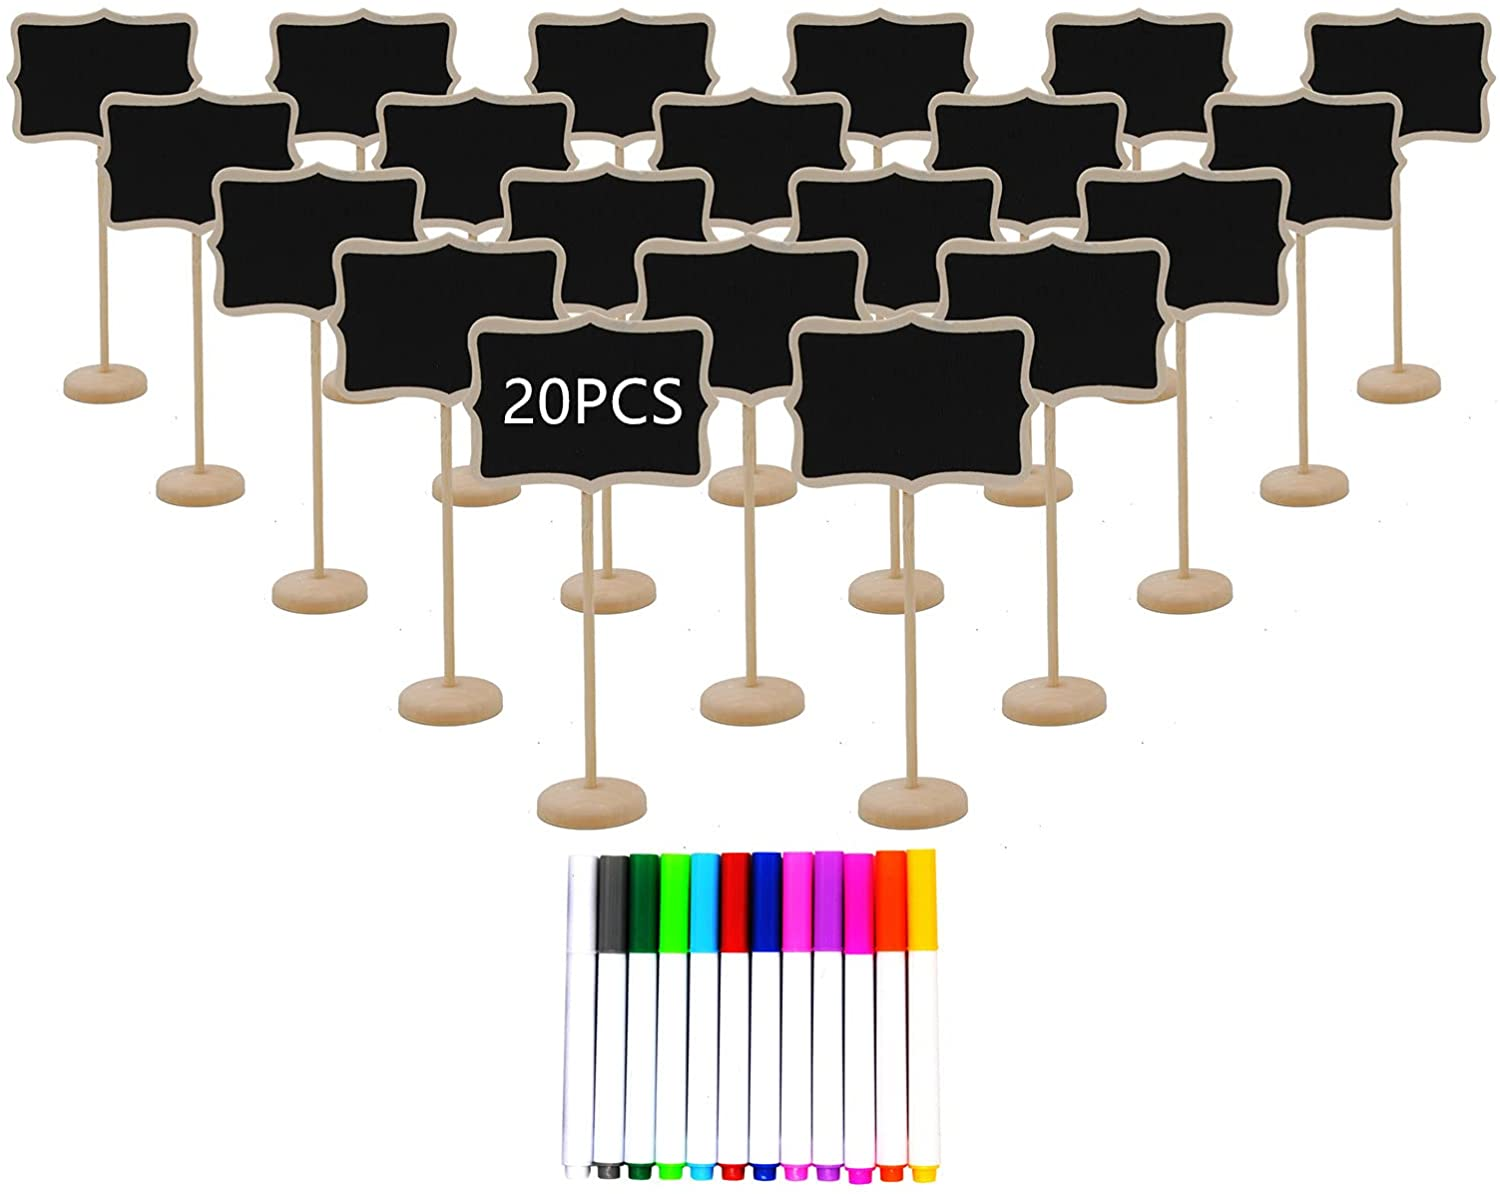 20PCS Wood Mini Chalkboard Sign with Easel Stand ,Food Labels for Party Buffet ,Blackboard for Message Board Signs,Weddings Place Cards, Birthday Parties,Table Numbers,Plants,Special Event Decorations